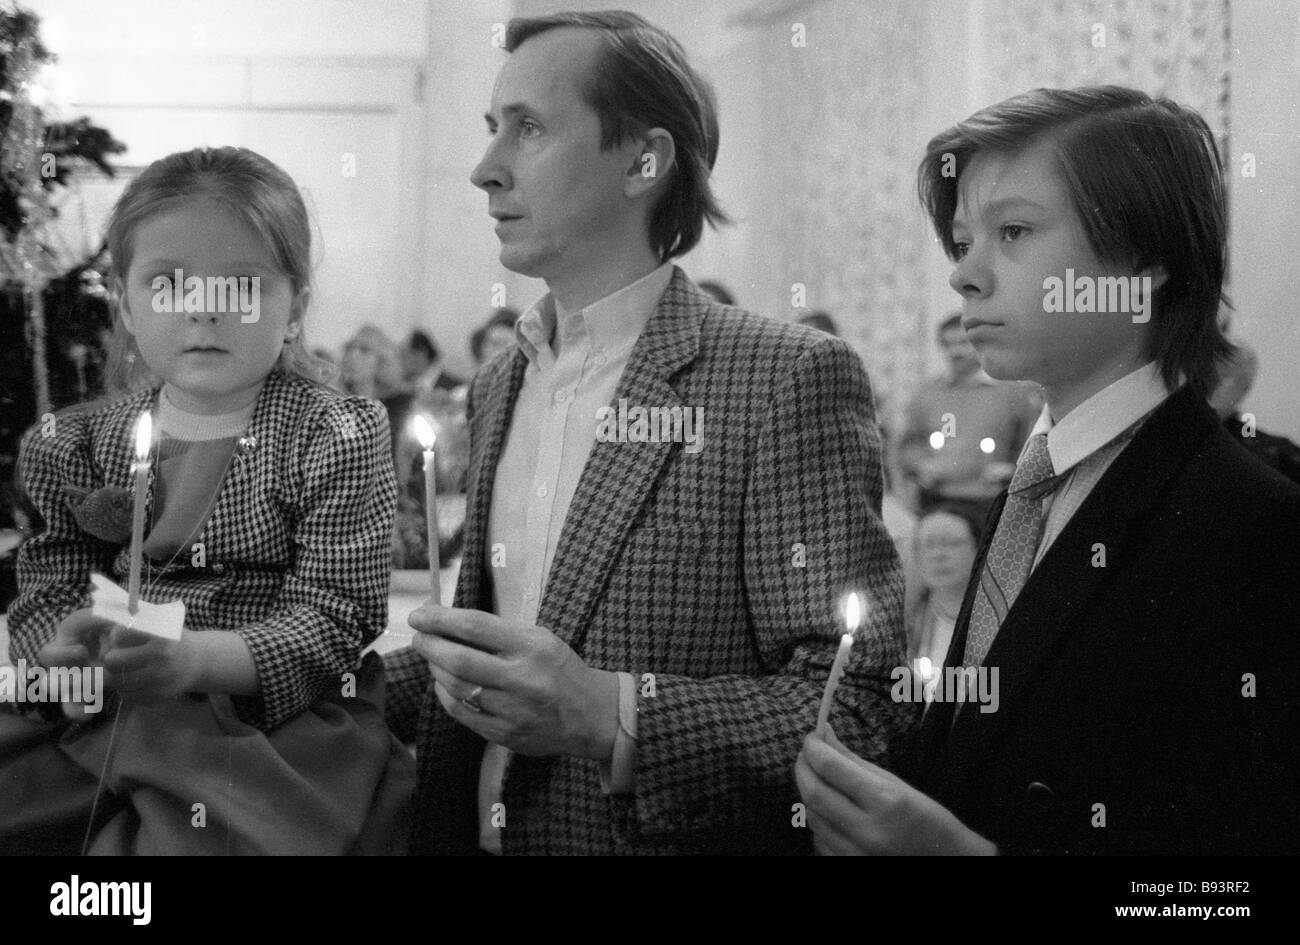 Maria Shukshina showed her grown twin sons for the first time 11/15/2016 48